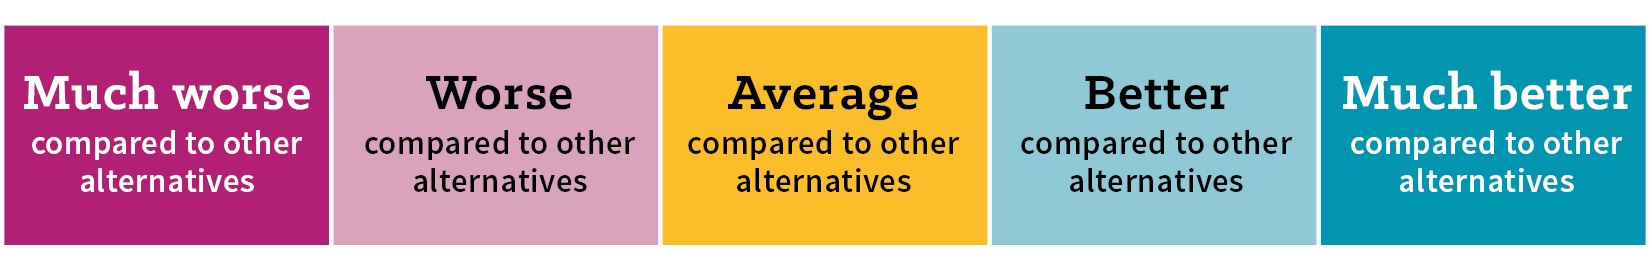 Scale showing how alternatives were scored against one another, ranging from much worse when compared to other alternatives to much better when compared to other alternatives.